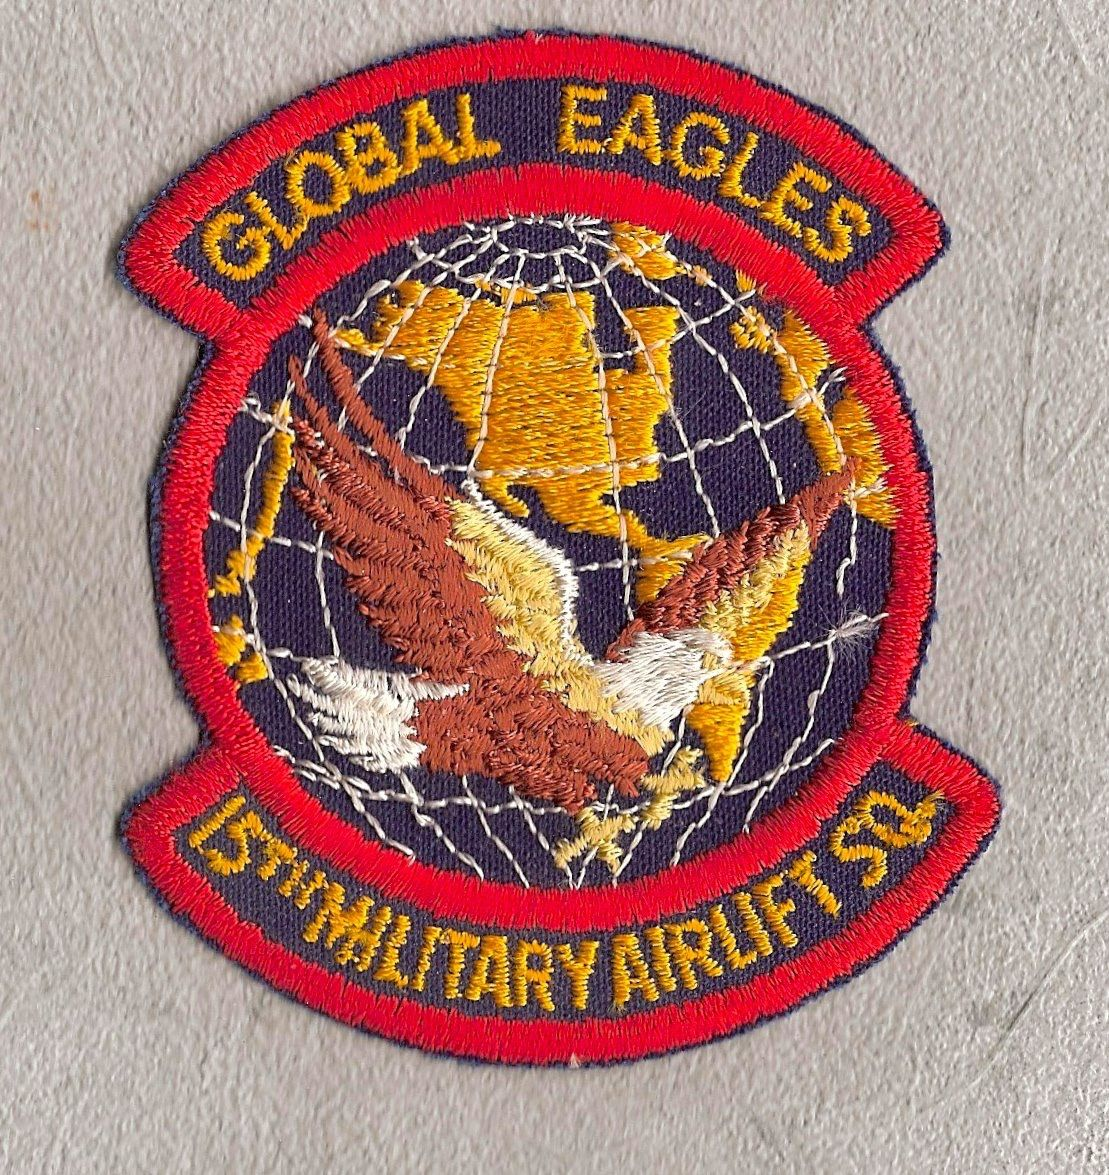 Idea by Historic Military Impressions on USAF patches